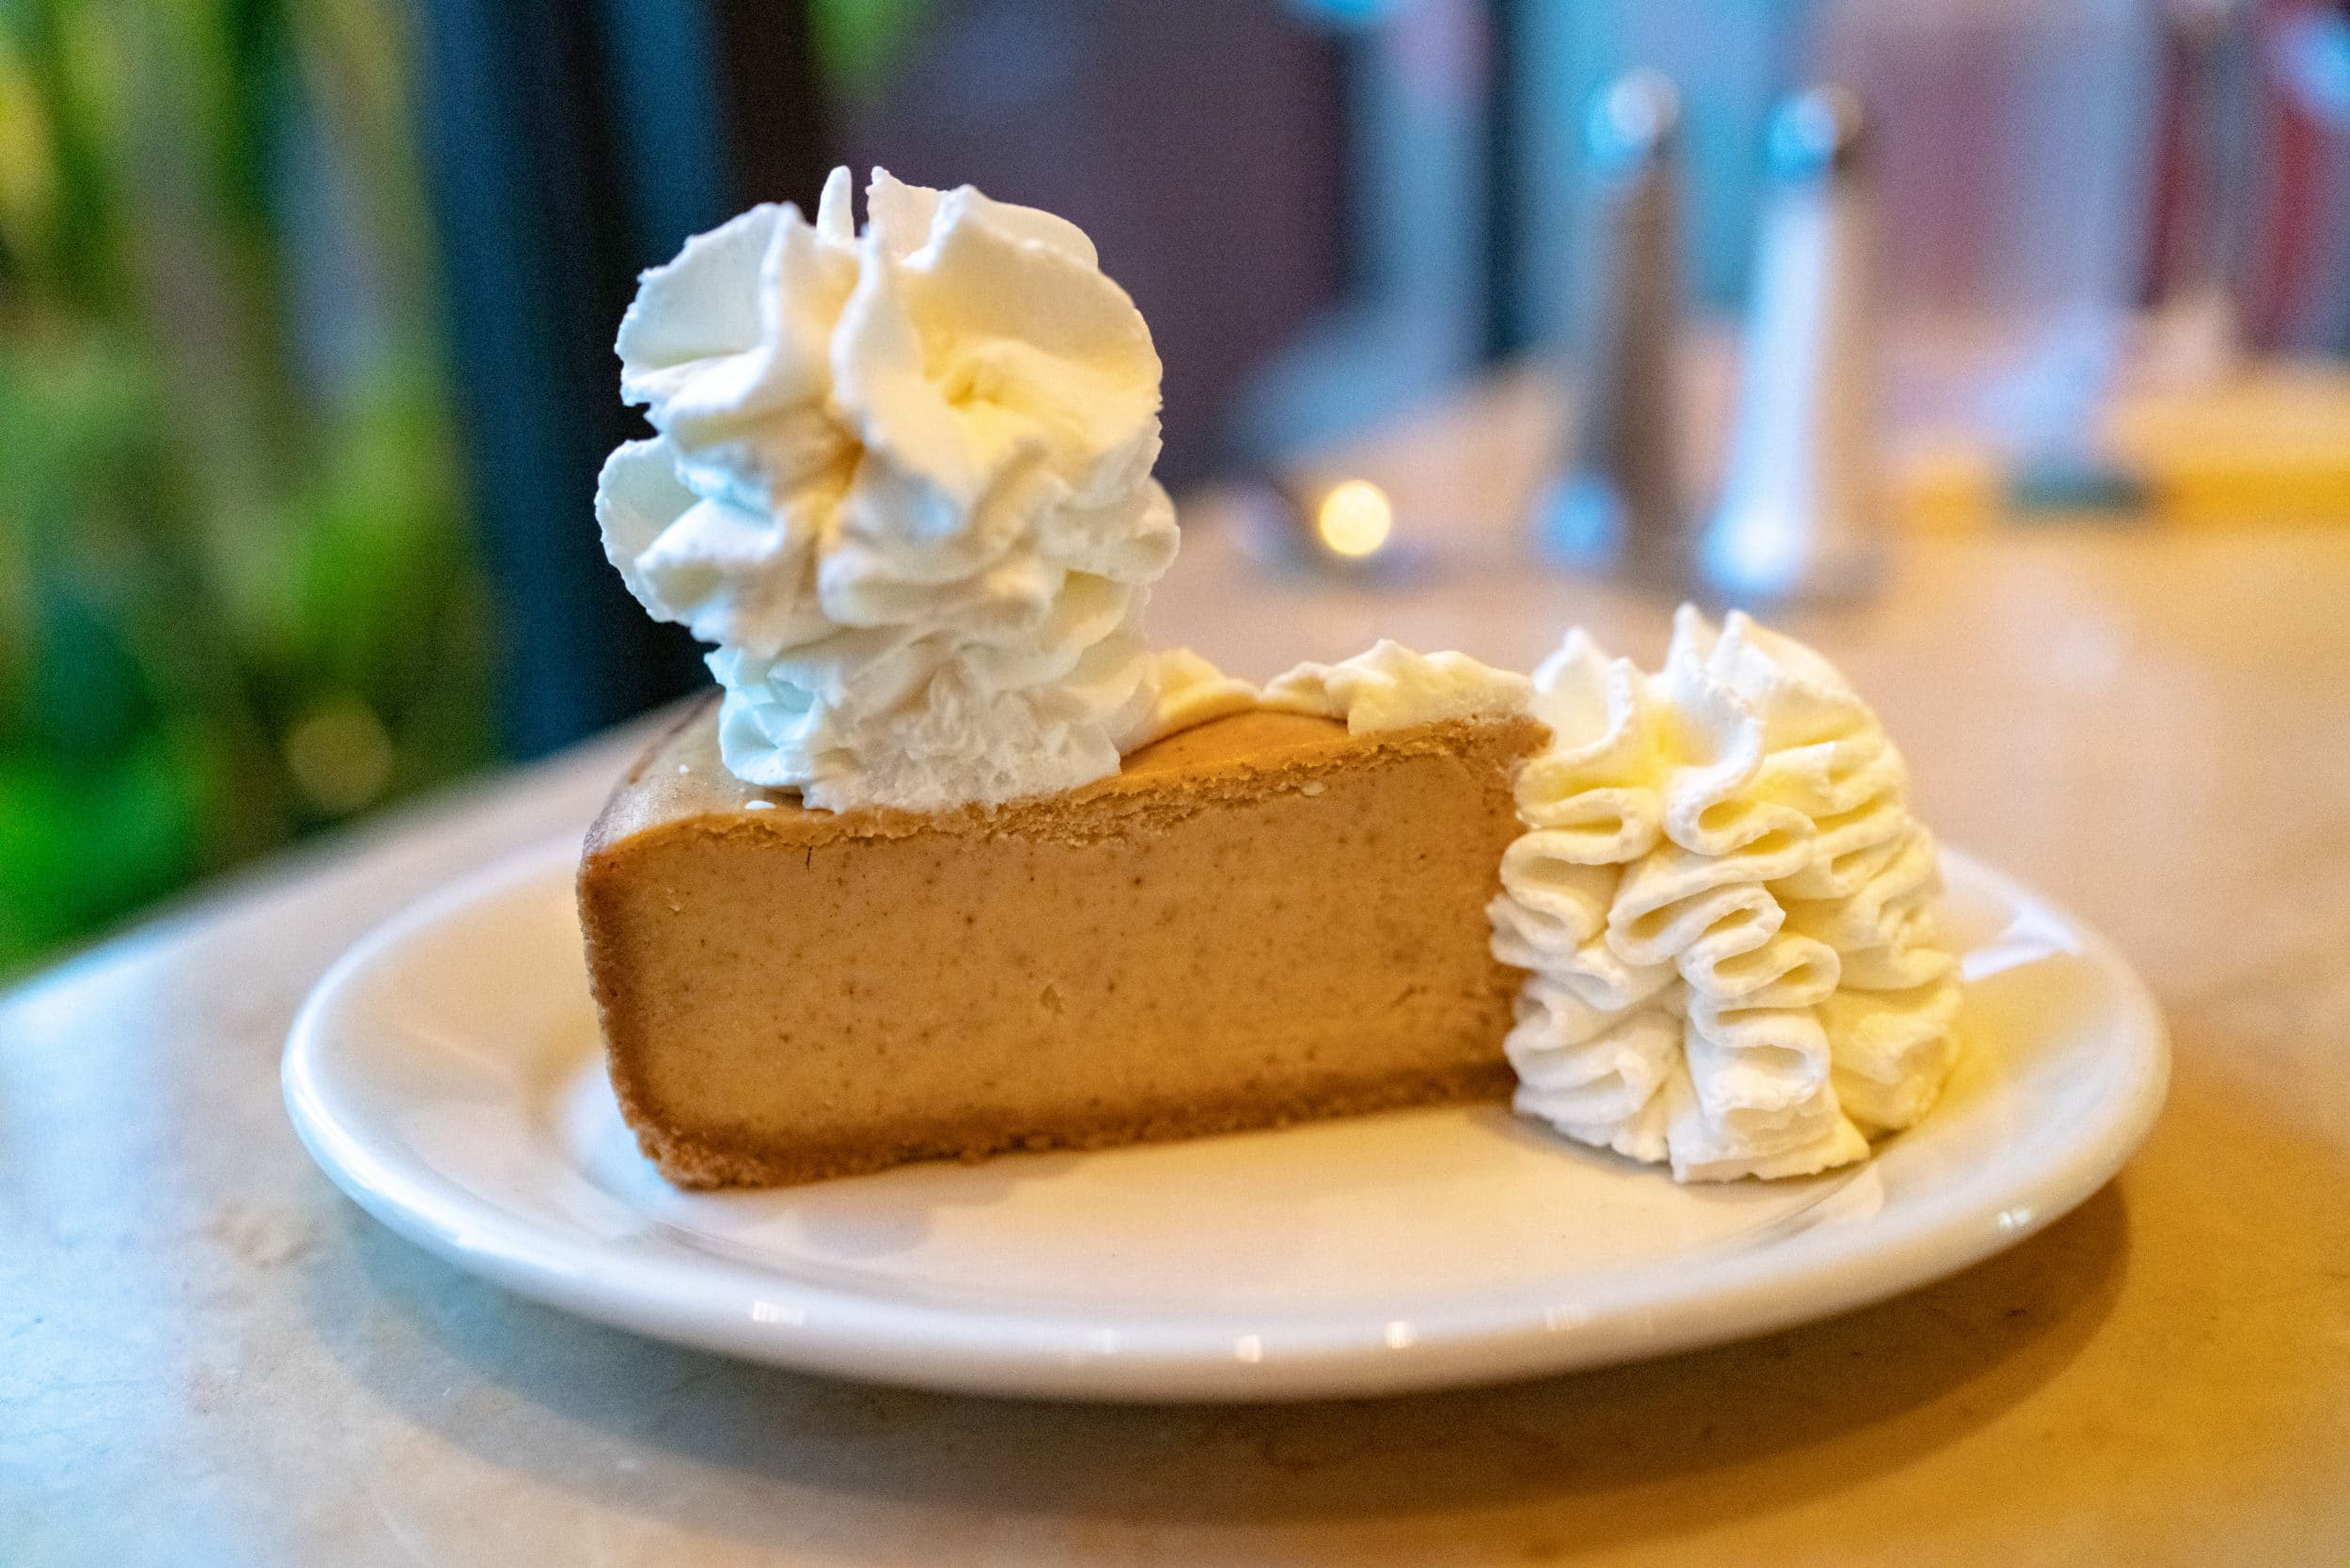 Pumpkin pie cheesecake at The Cheesecake Factory